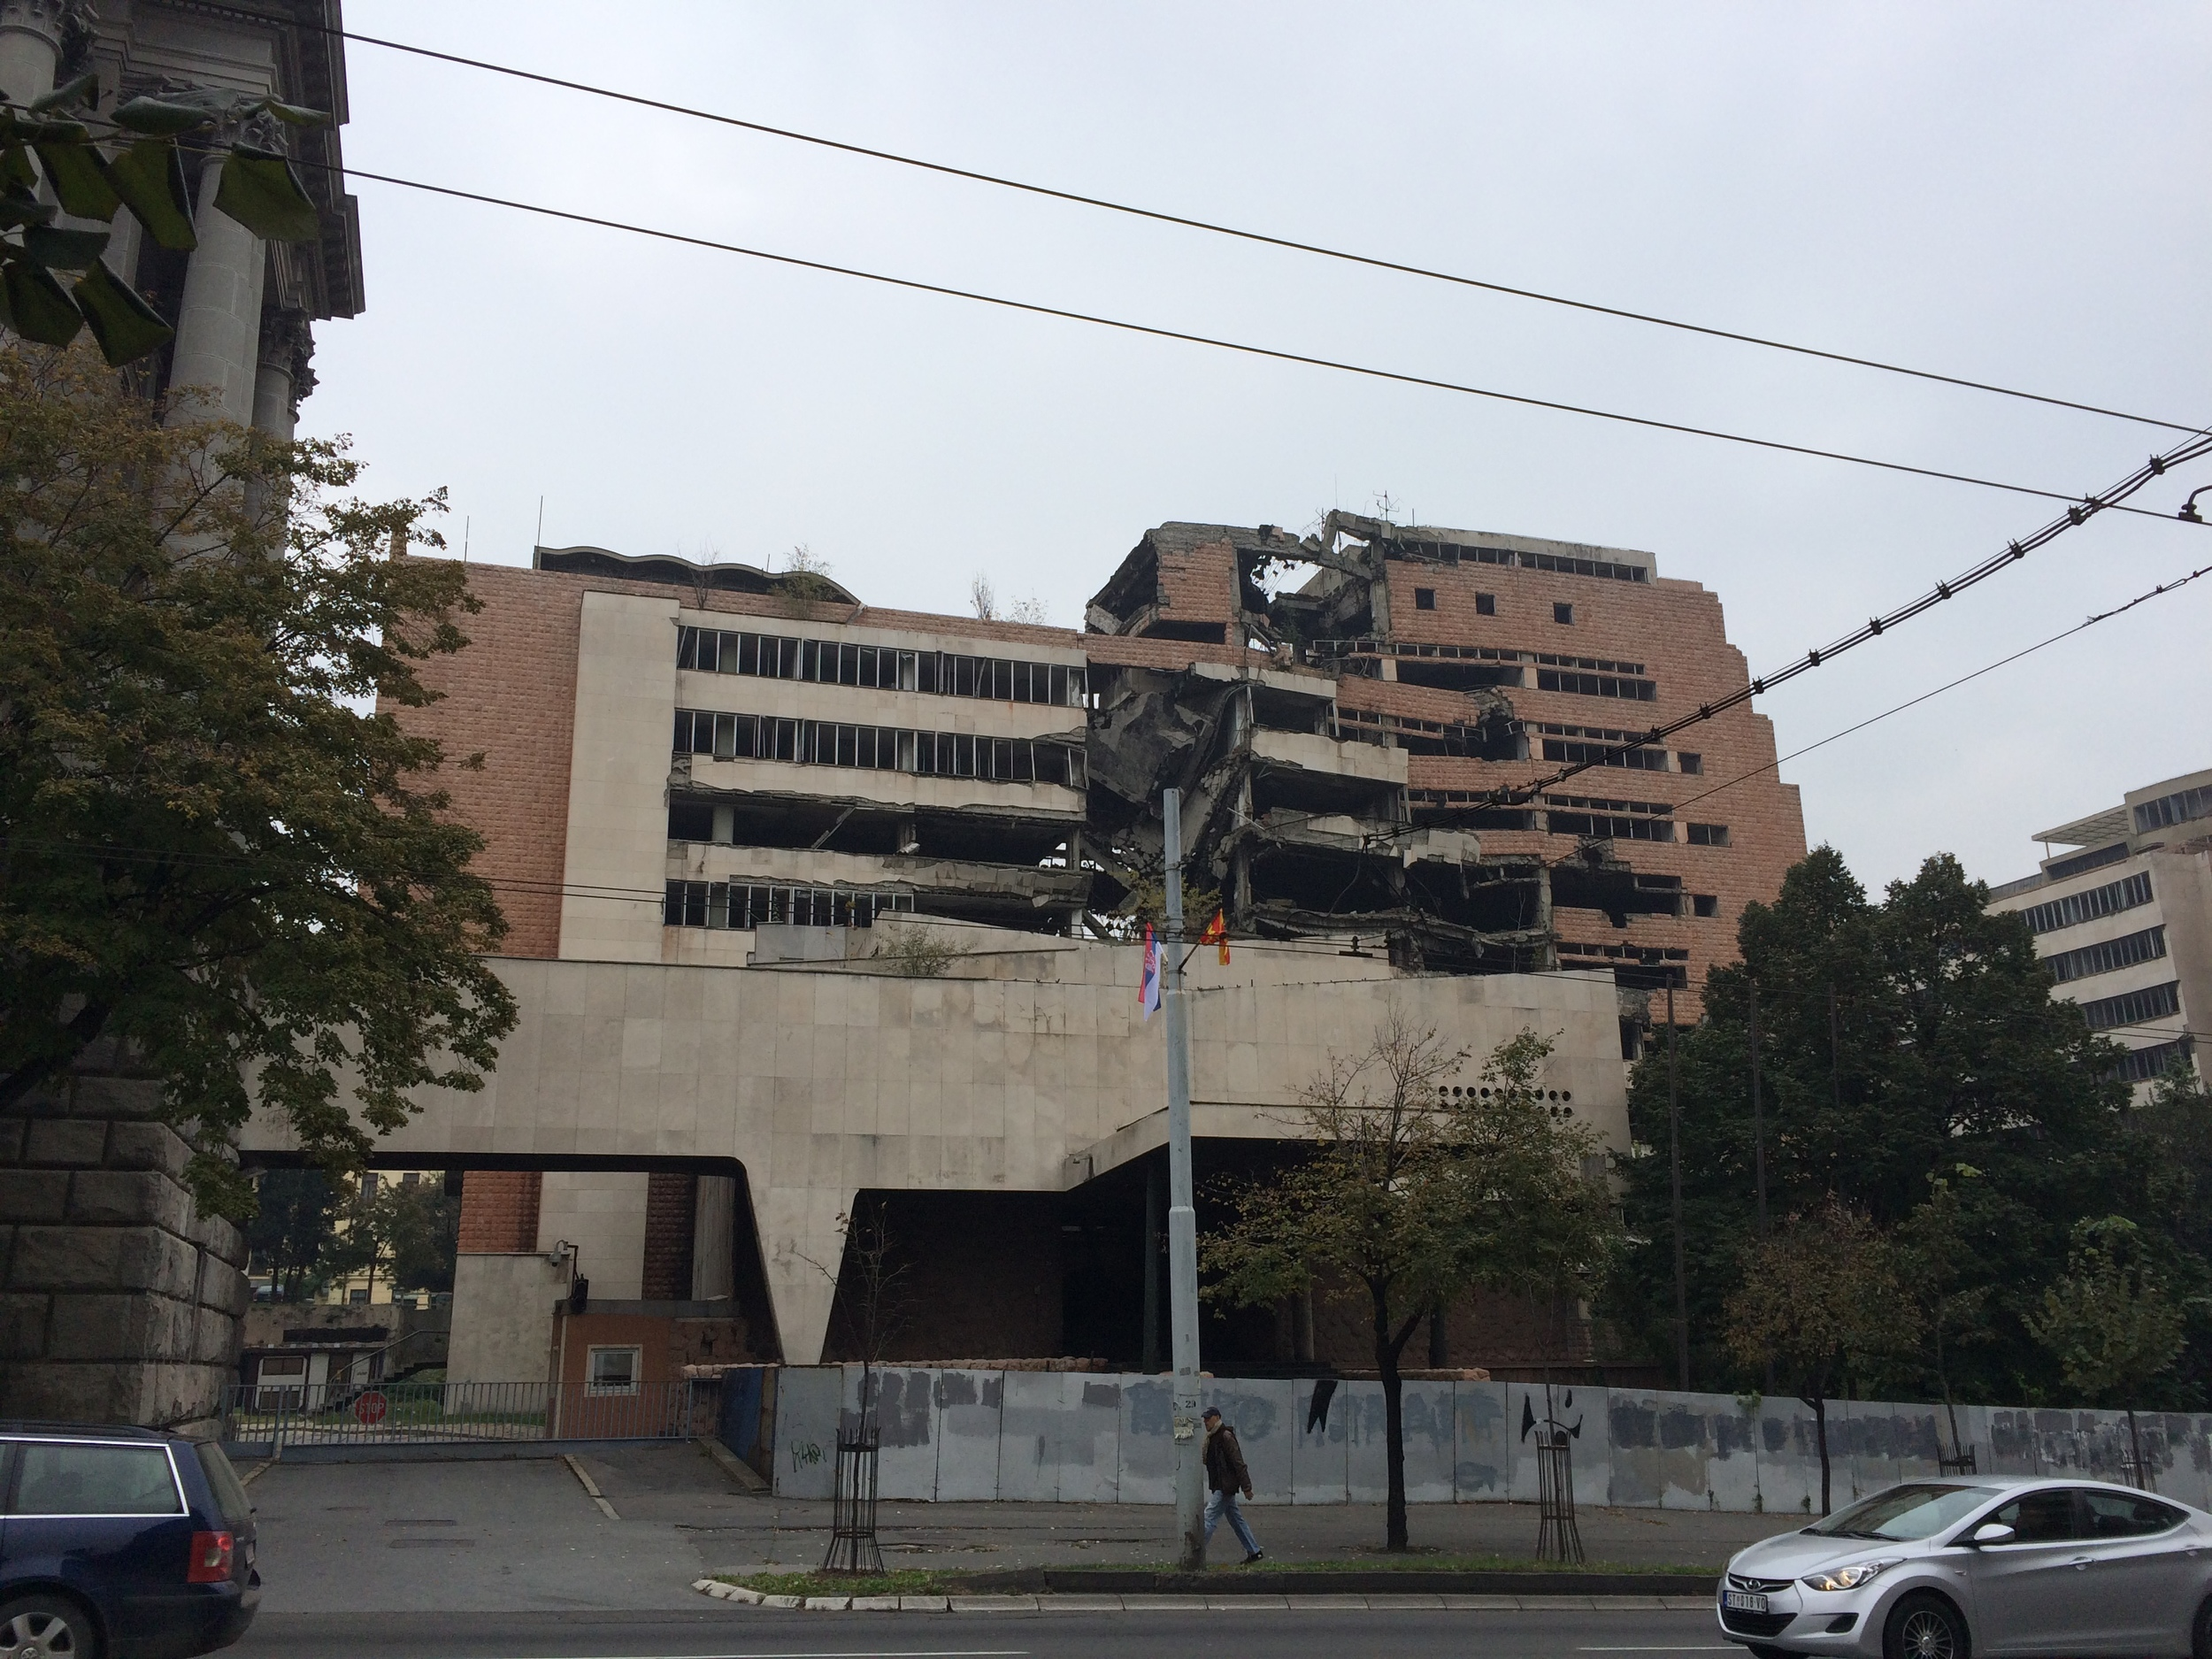 My first view of Belgrade: the ruins of the old bombed NATO buildings. You can still see remnants of the war even to this day.